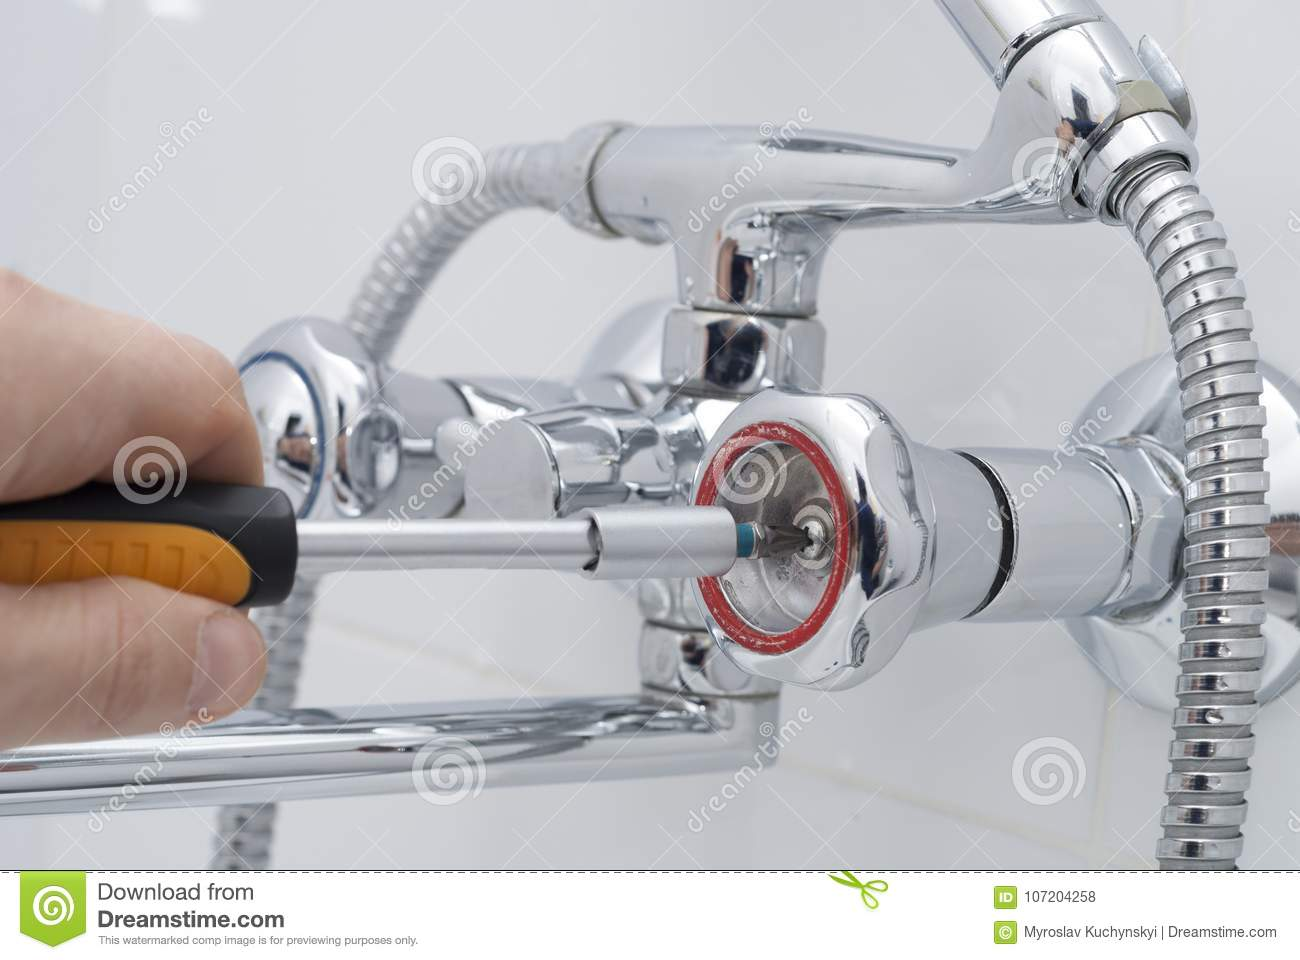 Repair of a water tap stock photo. Image of background - 107204258